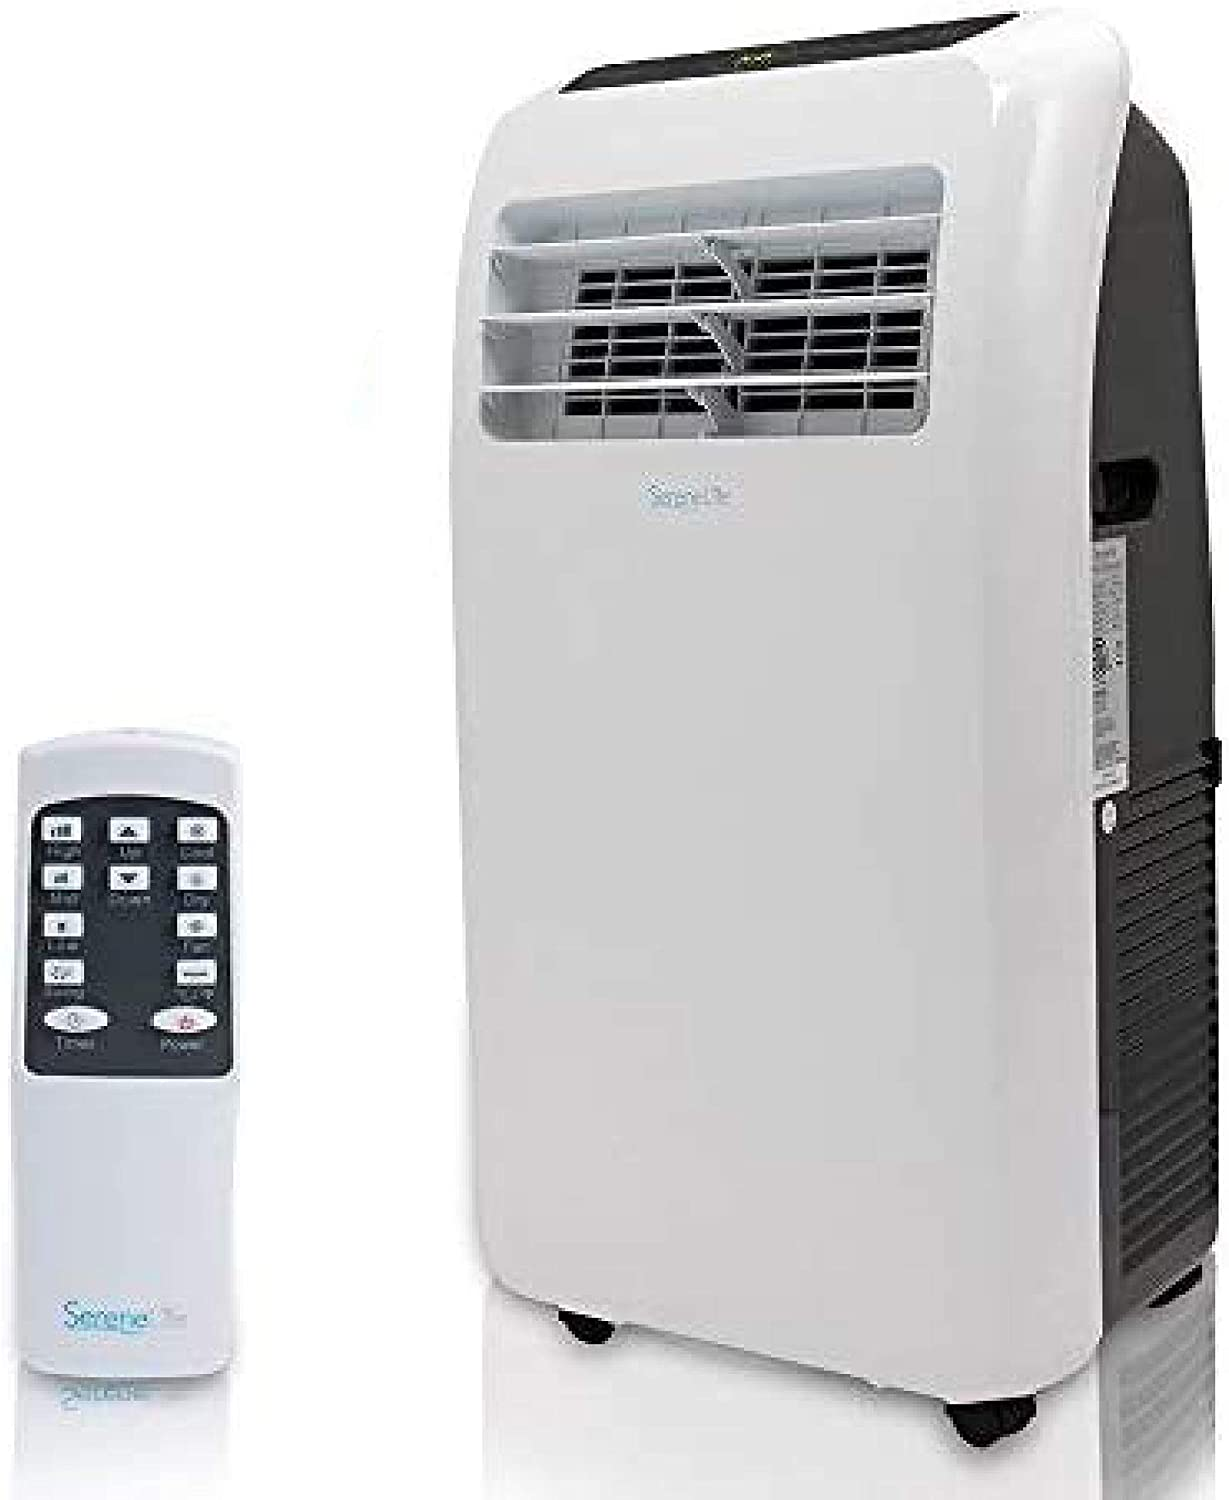 Portable Electric Air Ranking TOP6 Conditioner Unit - 10000 Purchase Power BTU P 1150W